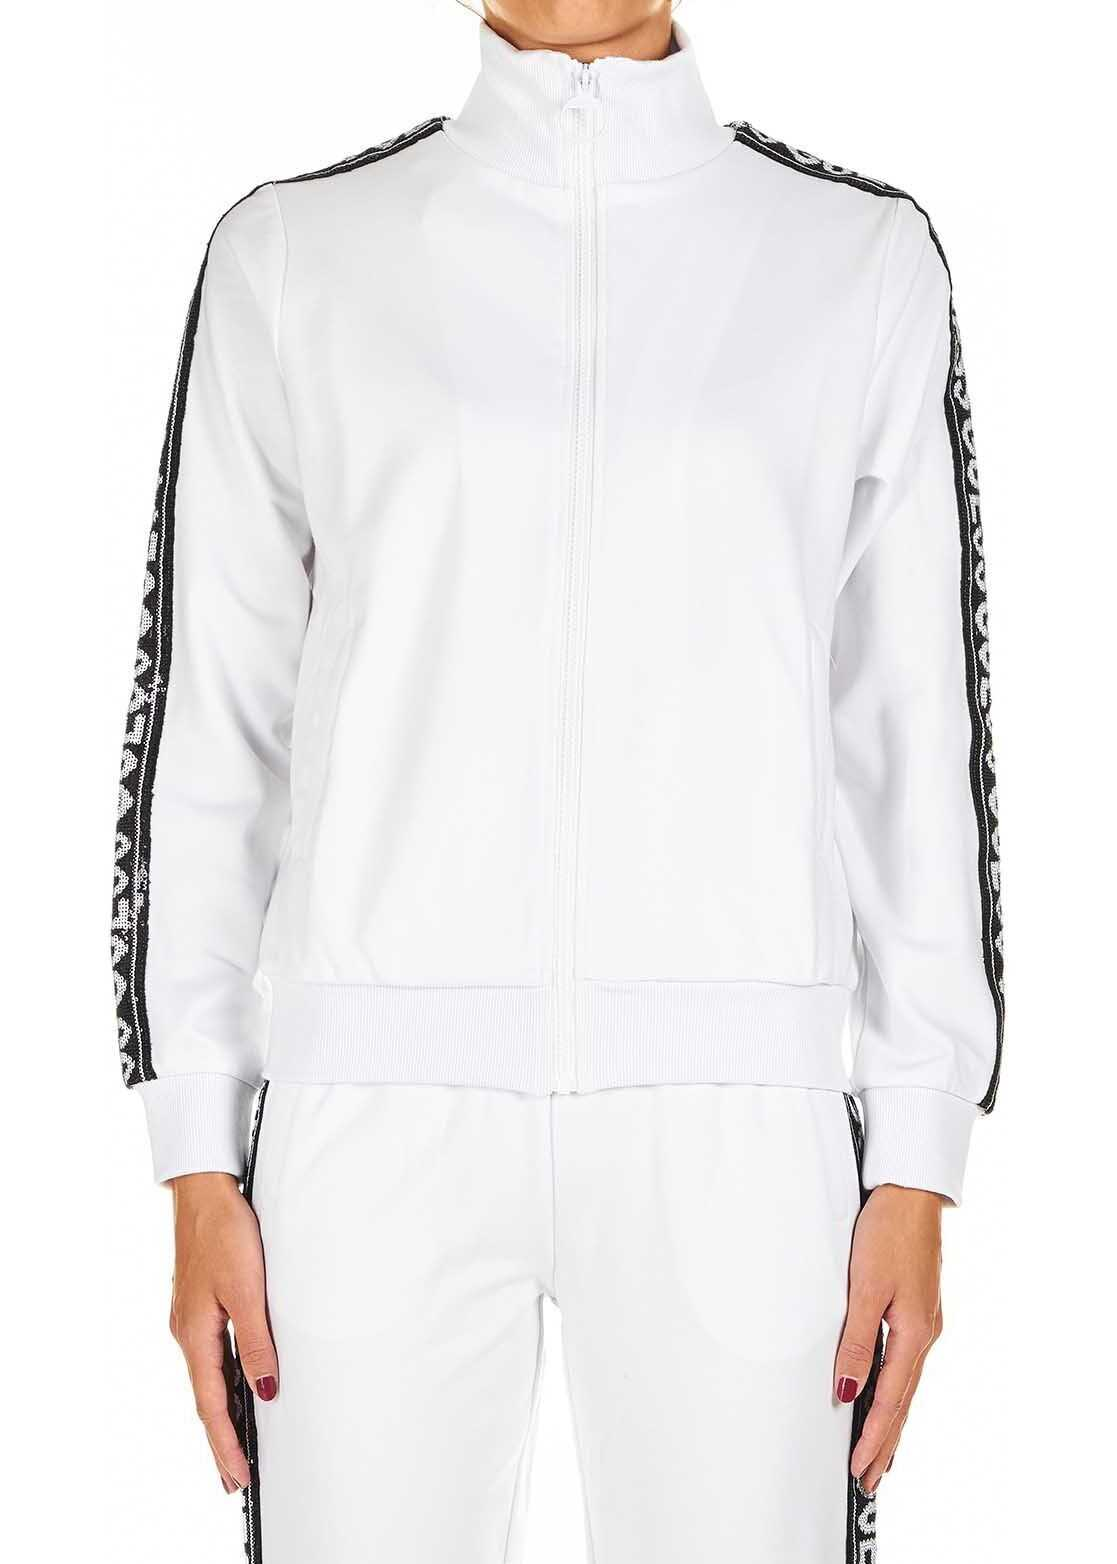 GUESS Trackjacket White